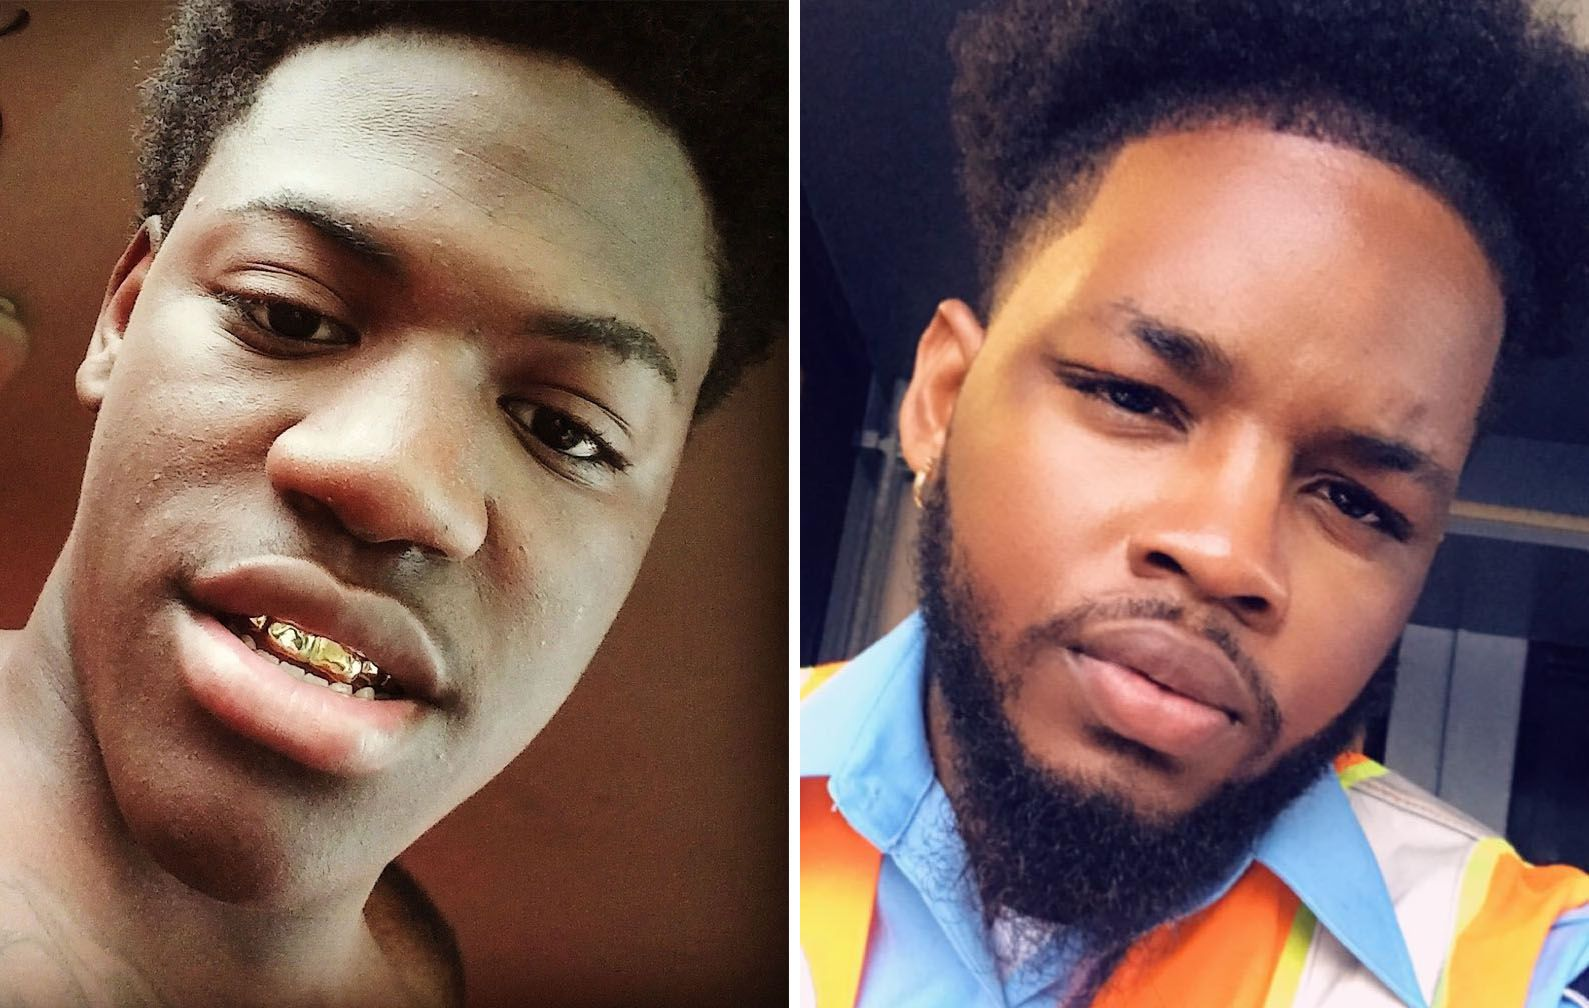 Kevin Berry Jr., (left), 23, of Dallas, whose nickname was Lil Wess, and Byron Craven, 23, of Arlington, were killed early Sunday morning, Oct. 27, 2019, when a gunman opened fire at a party just outside of Greenville, Texas.